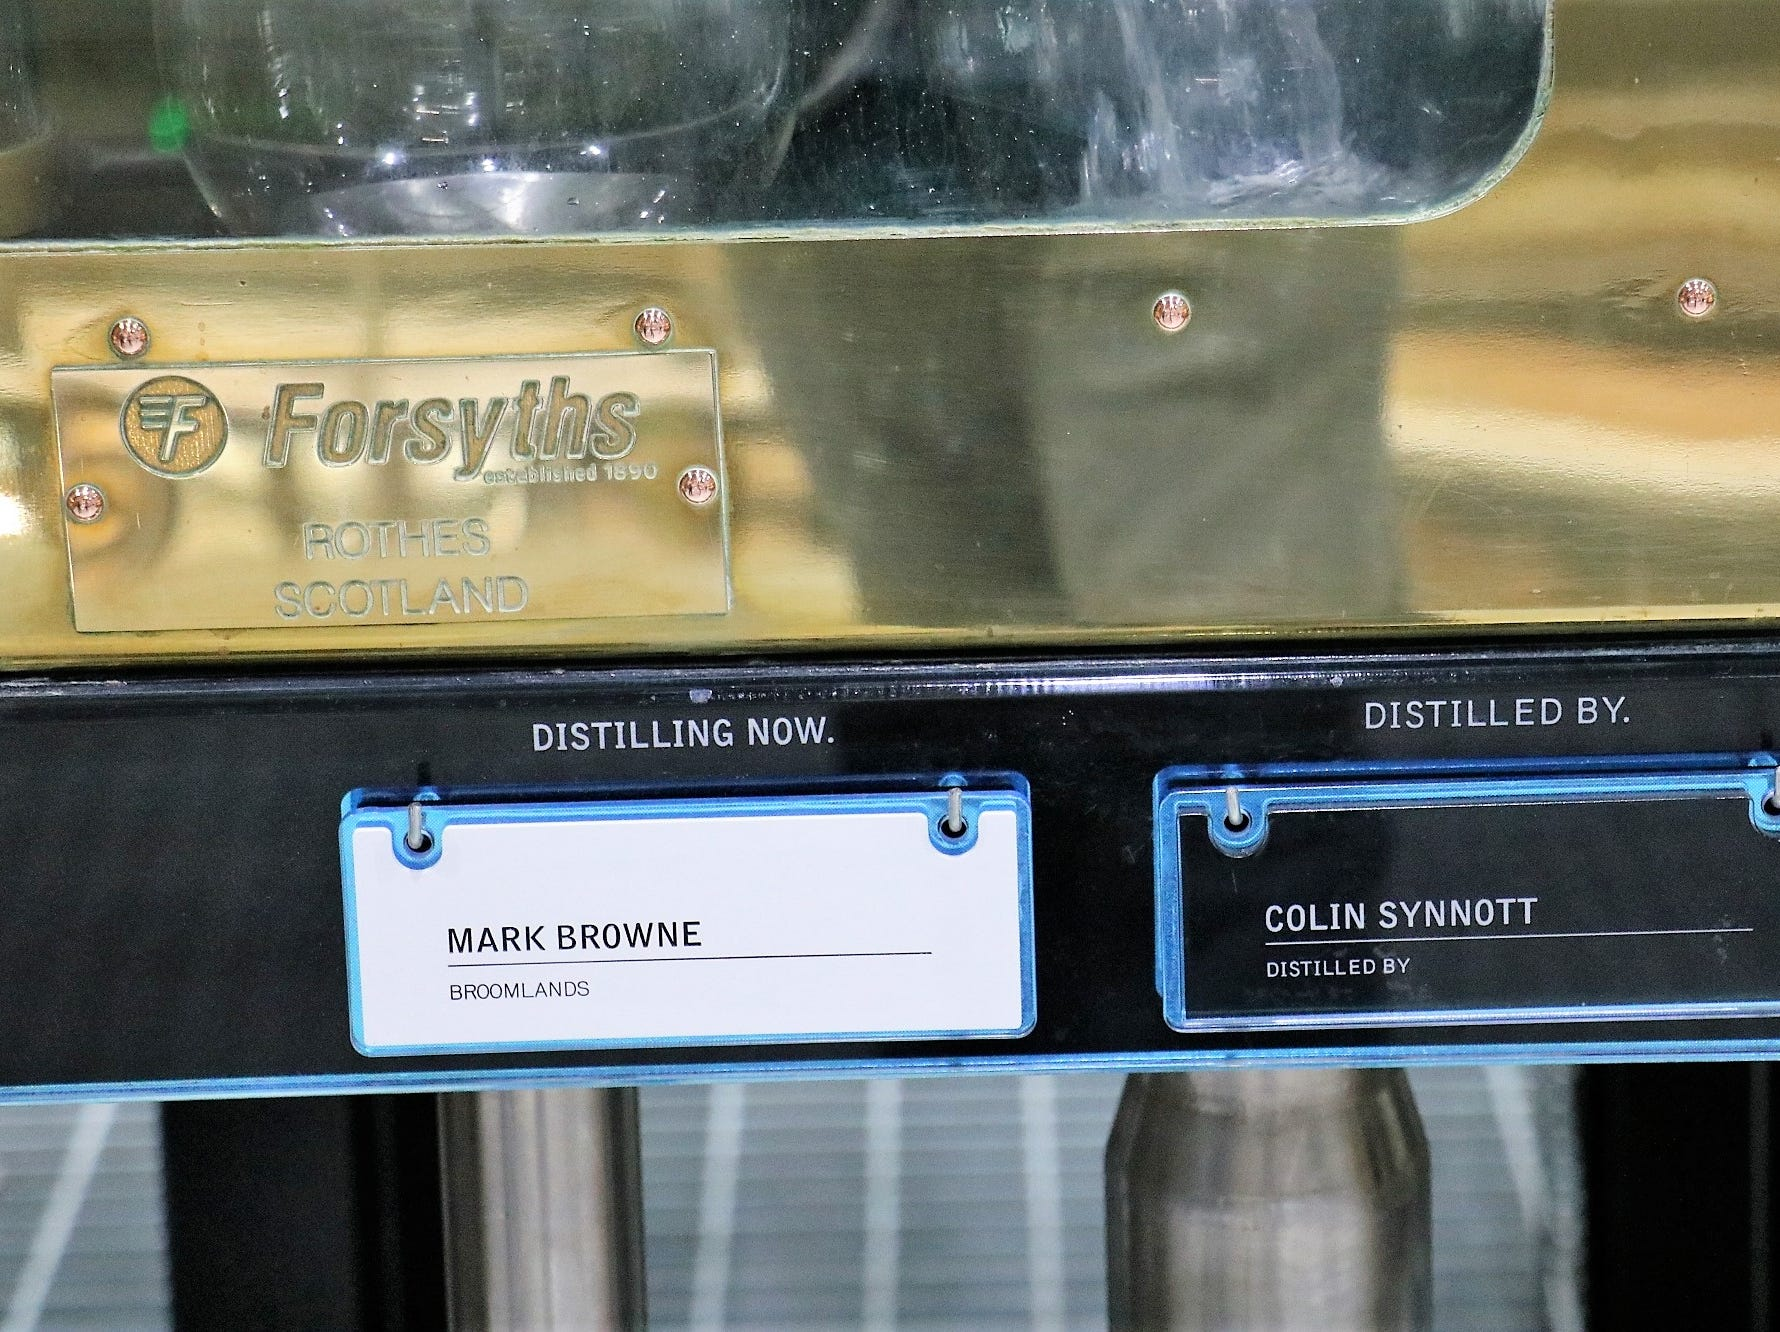 """The spirits safe uniquely shows the name of the farmer whose grain is currently being distilled. It's all a part of what distillery founder Mark Reynier refers to as """"the three T's"""": terroir, traceability and transparency."""